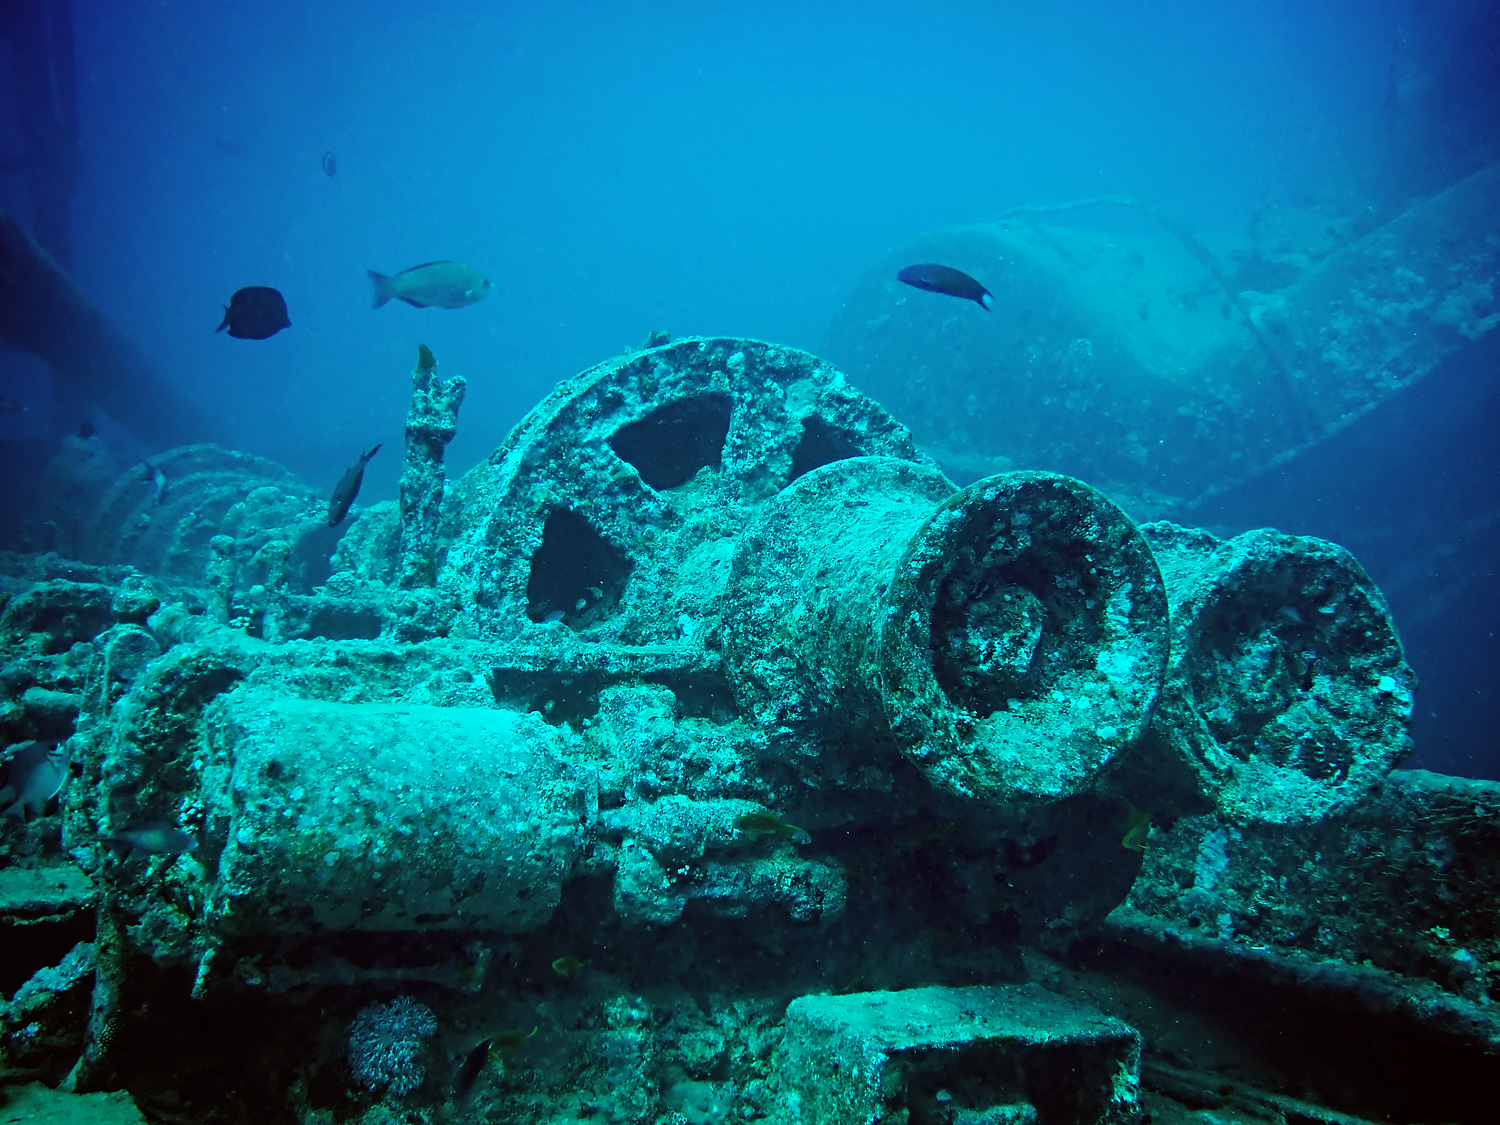 [Image: Thistlegorm_train_parts_minus_red_edit.jpg]